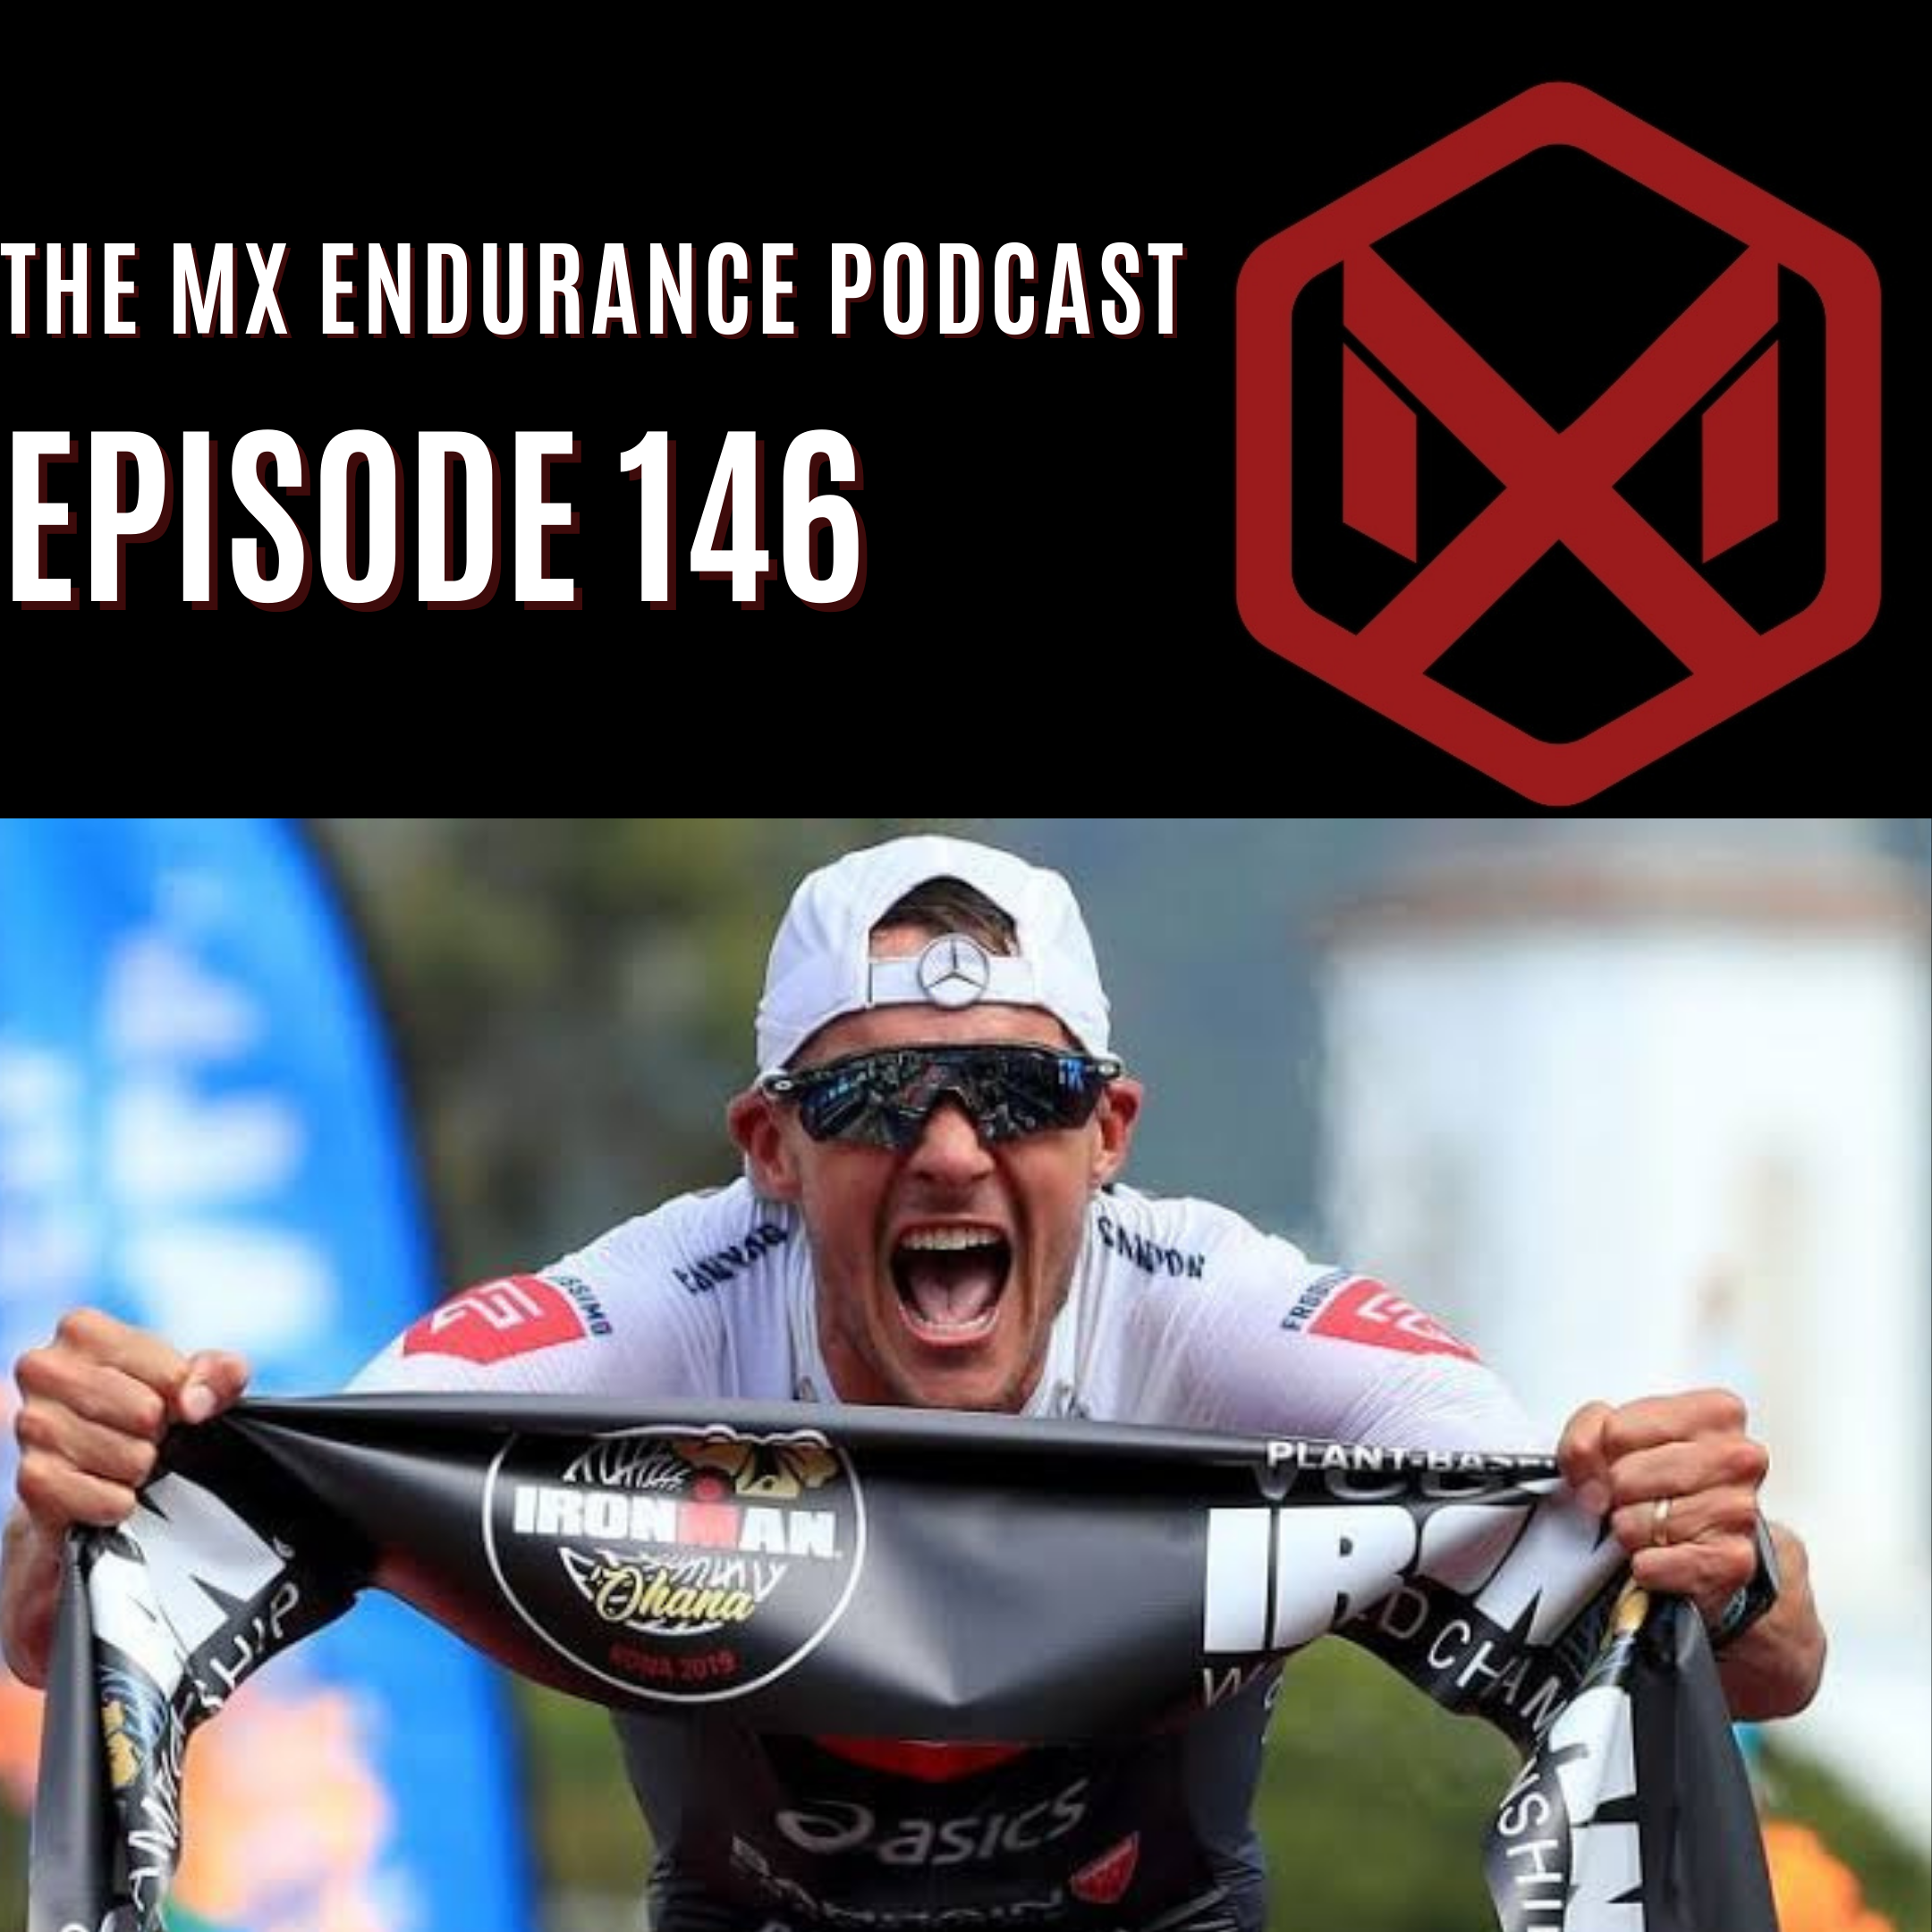 #146 - Can Anyone Beat Jan Frodeno with Chris McCormack